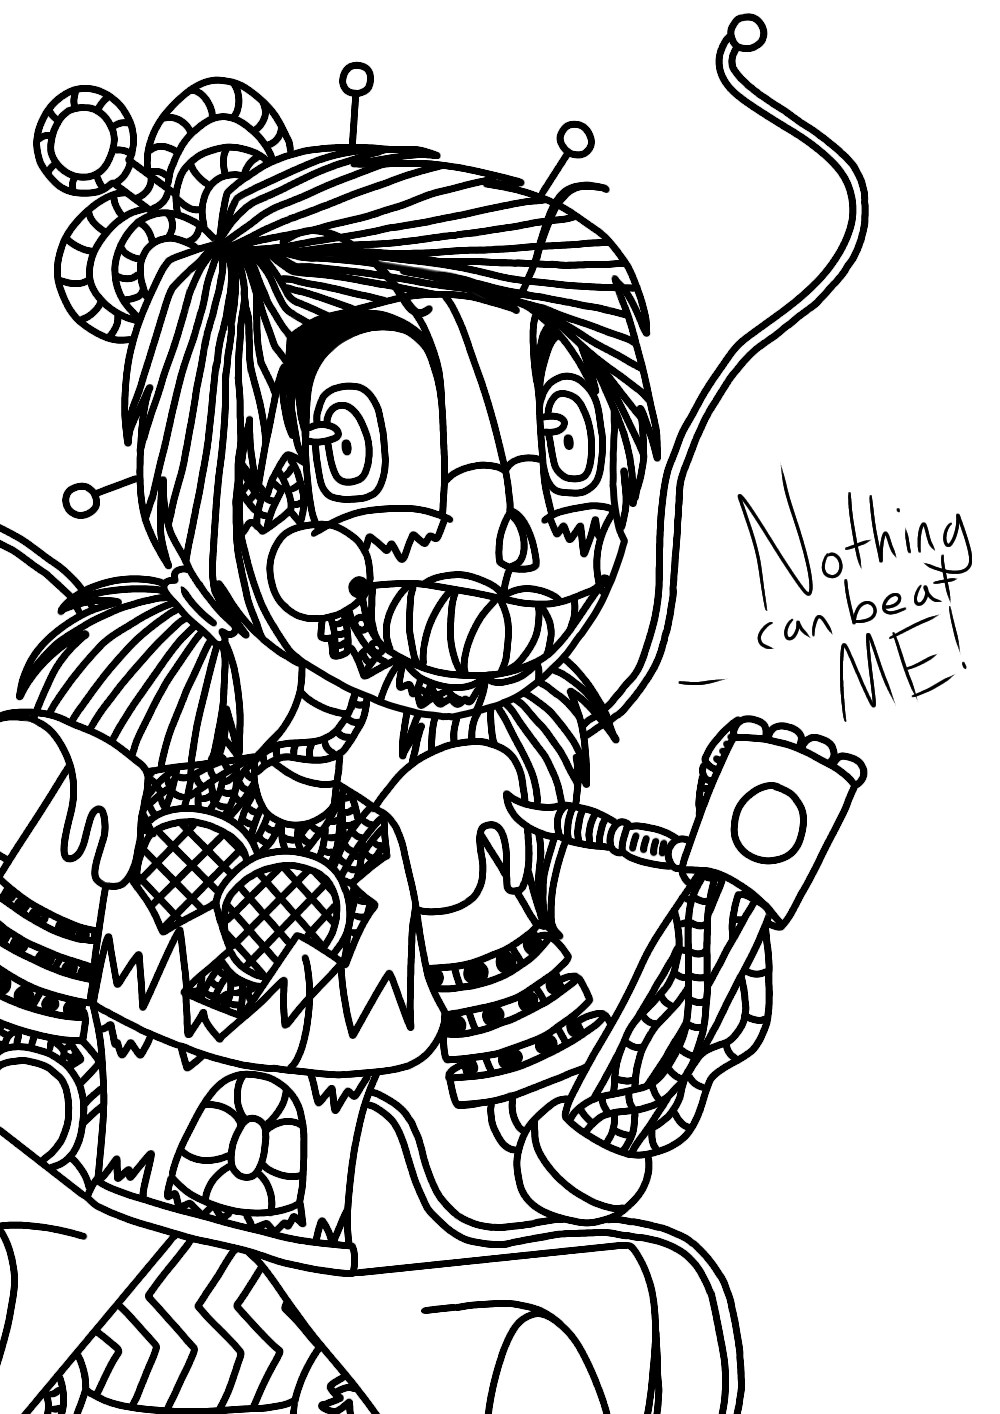 Fnaf Baby Coloring Pages : coloring, pages, Cuphead, Styled, Scrap, Coloring, Page!, Fandom